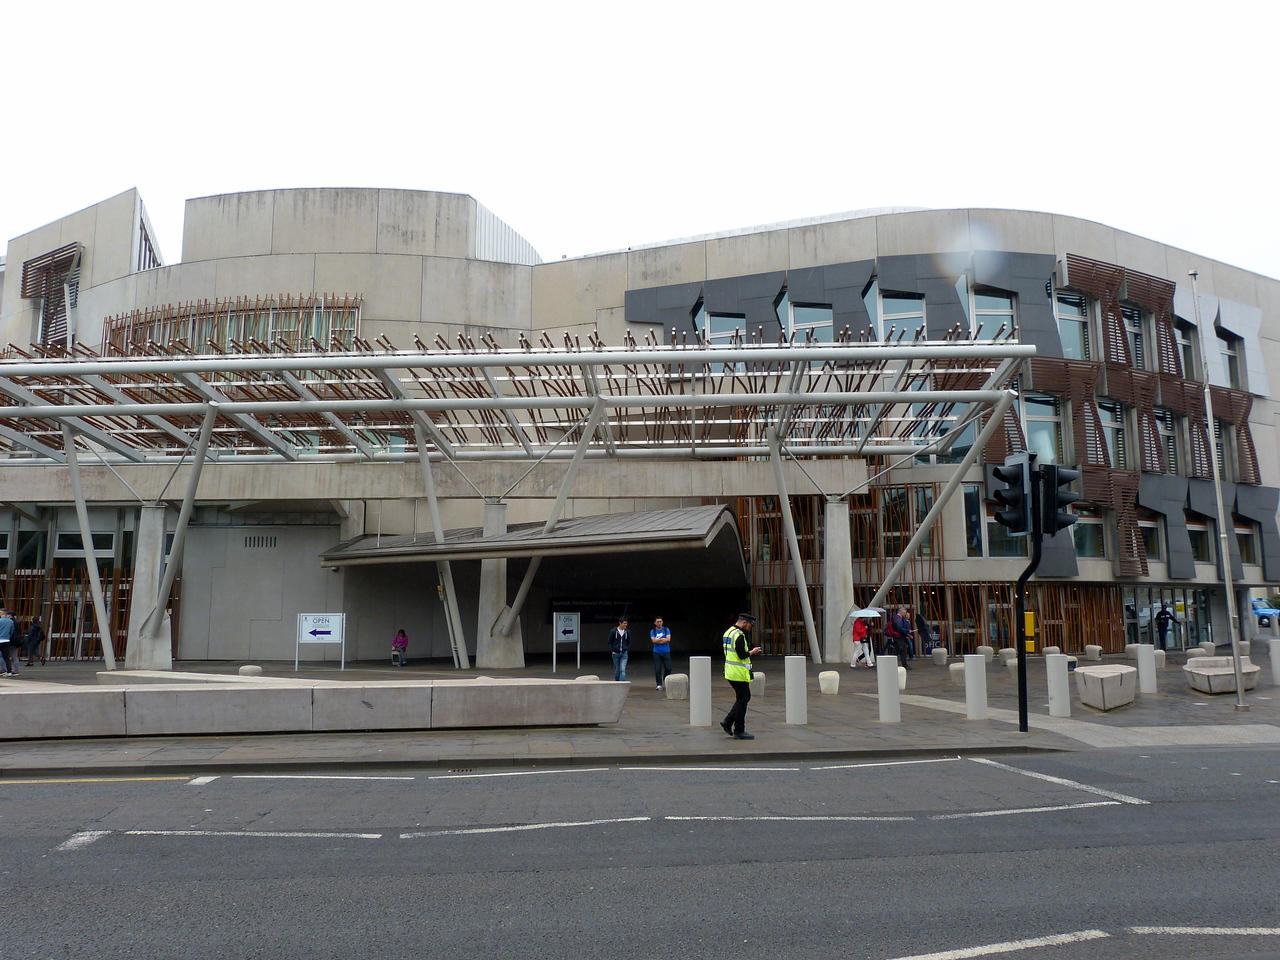 Exterior of the Scottish Parliament Building, Edinburgh.